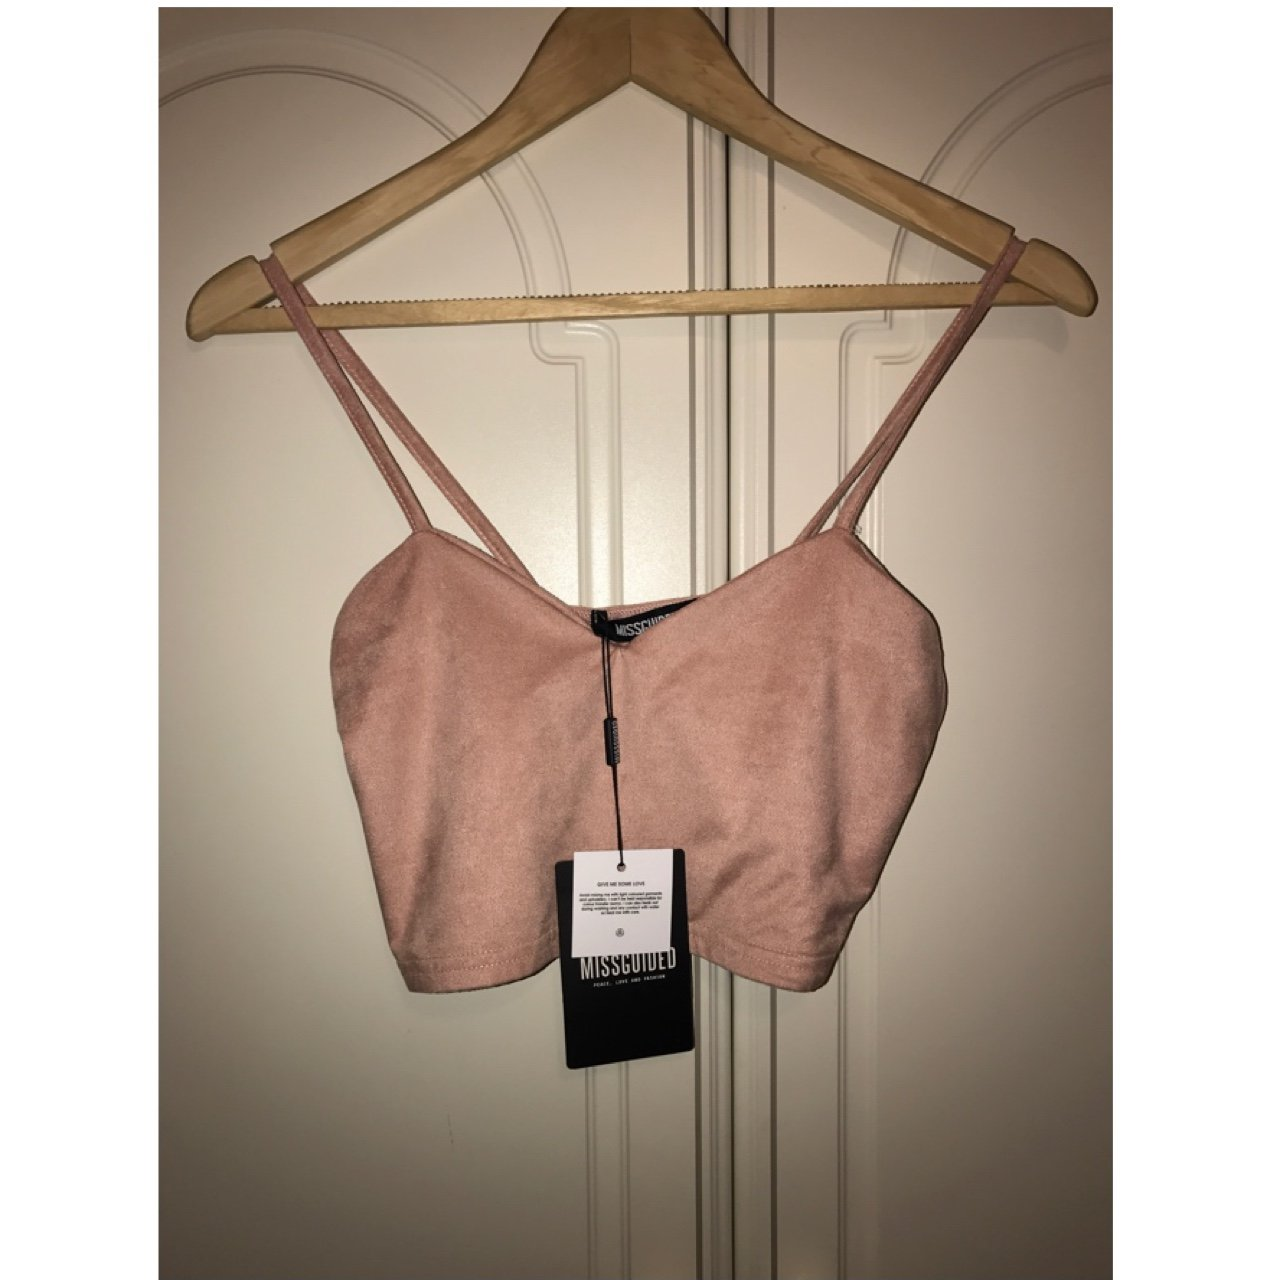 25f2bc96cdf921 MISSGUIDED brand new with tags Pink suede crop top Size + p - Depop